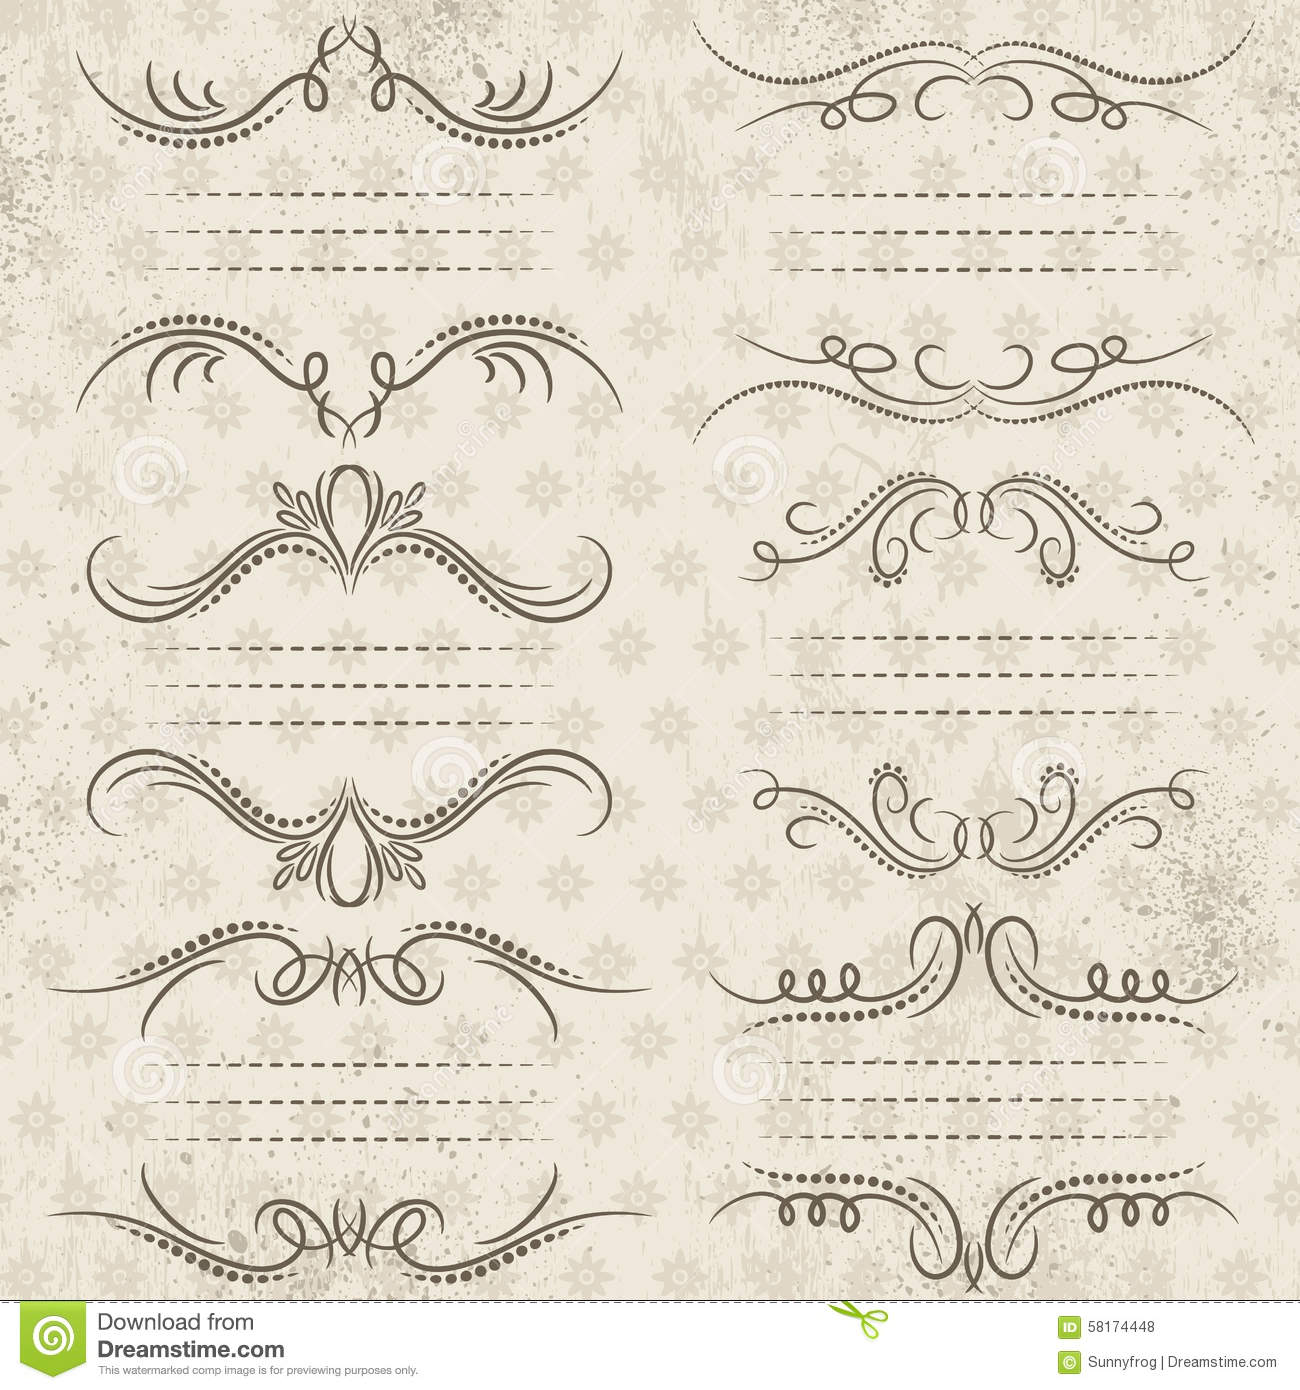 Vintage elements and borders set for ornate and decoration stock - Calligraphy Decorative Borders Ornamental Rules Iders